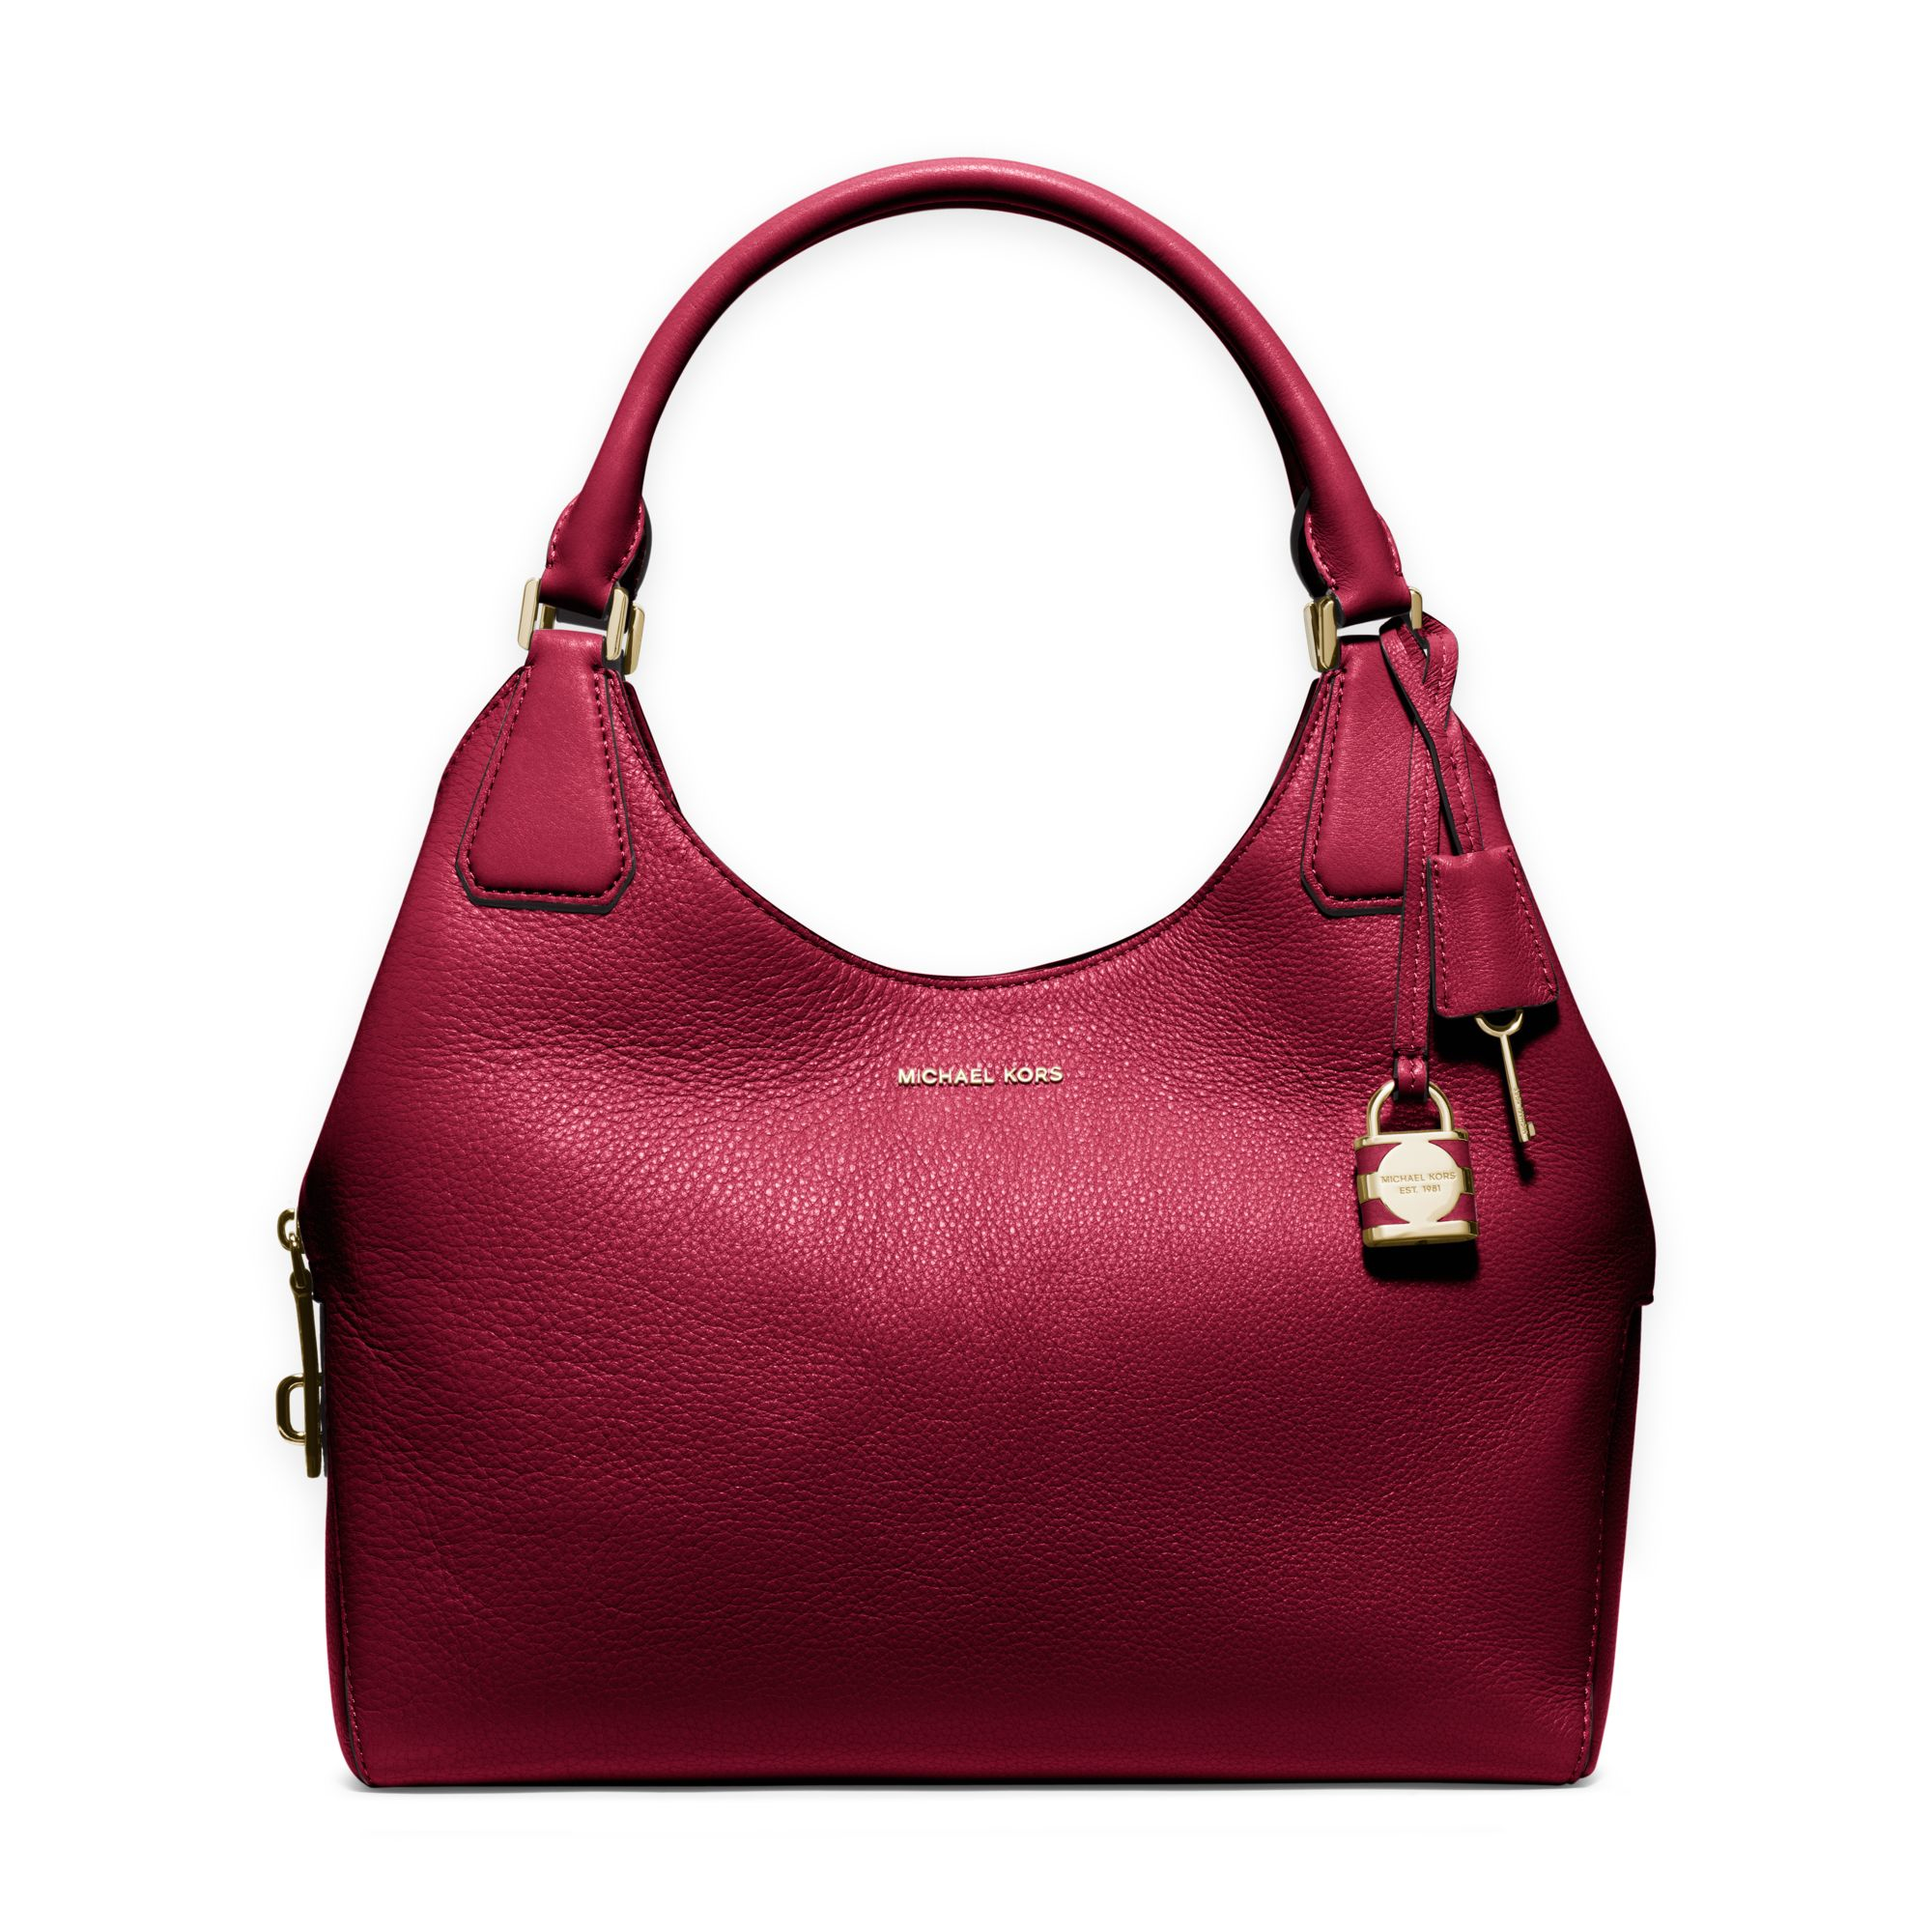 7baa4eb64b28 Michael Kors Camille Large Leather Shoulder Bag in Red - Lyst